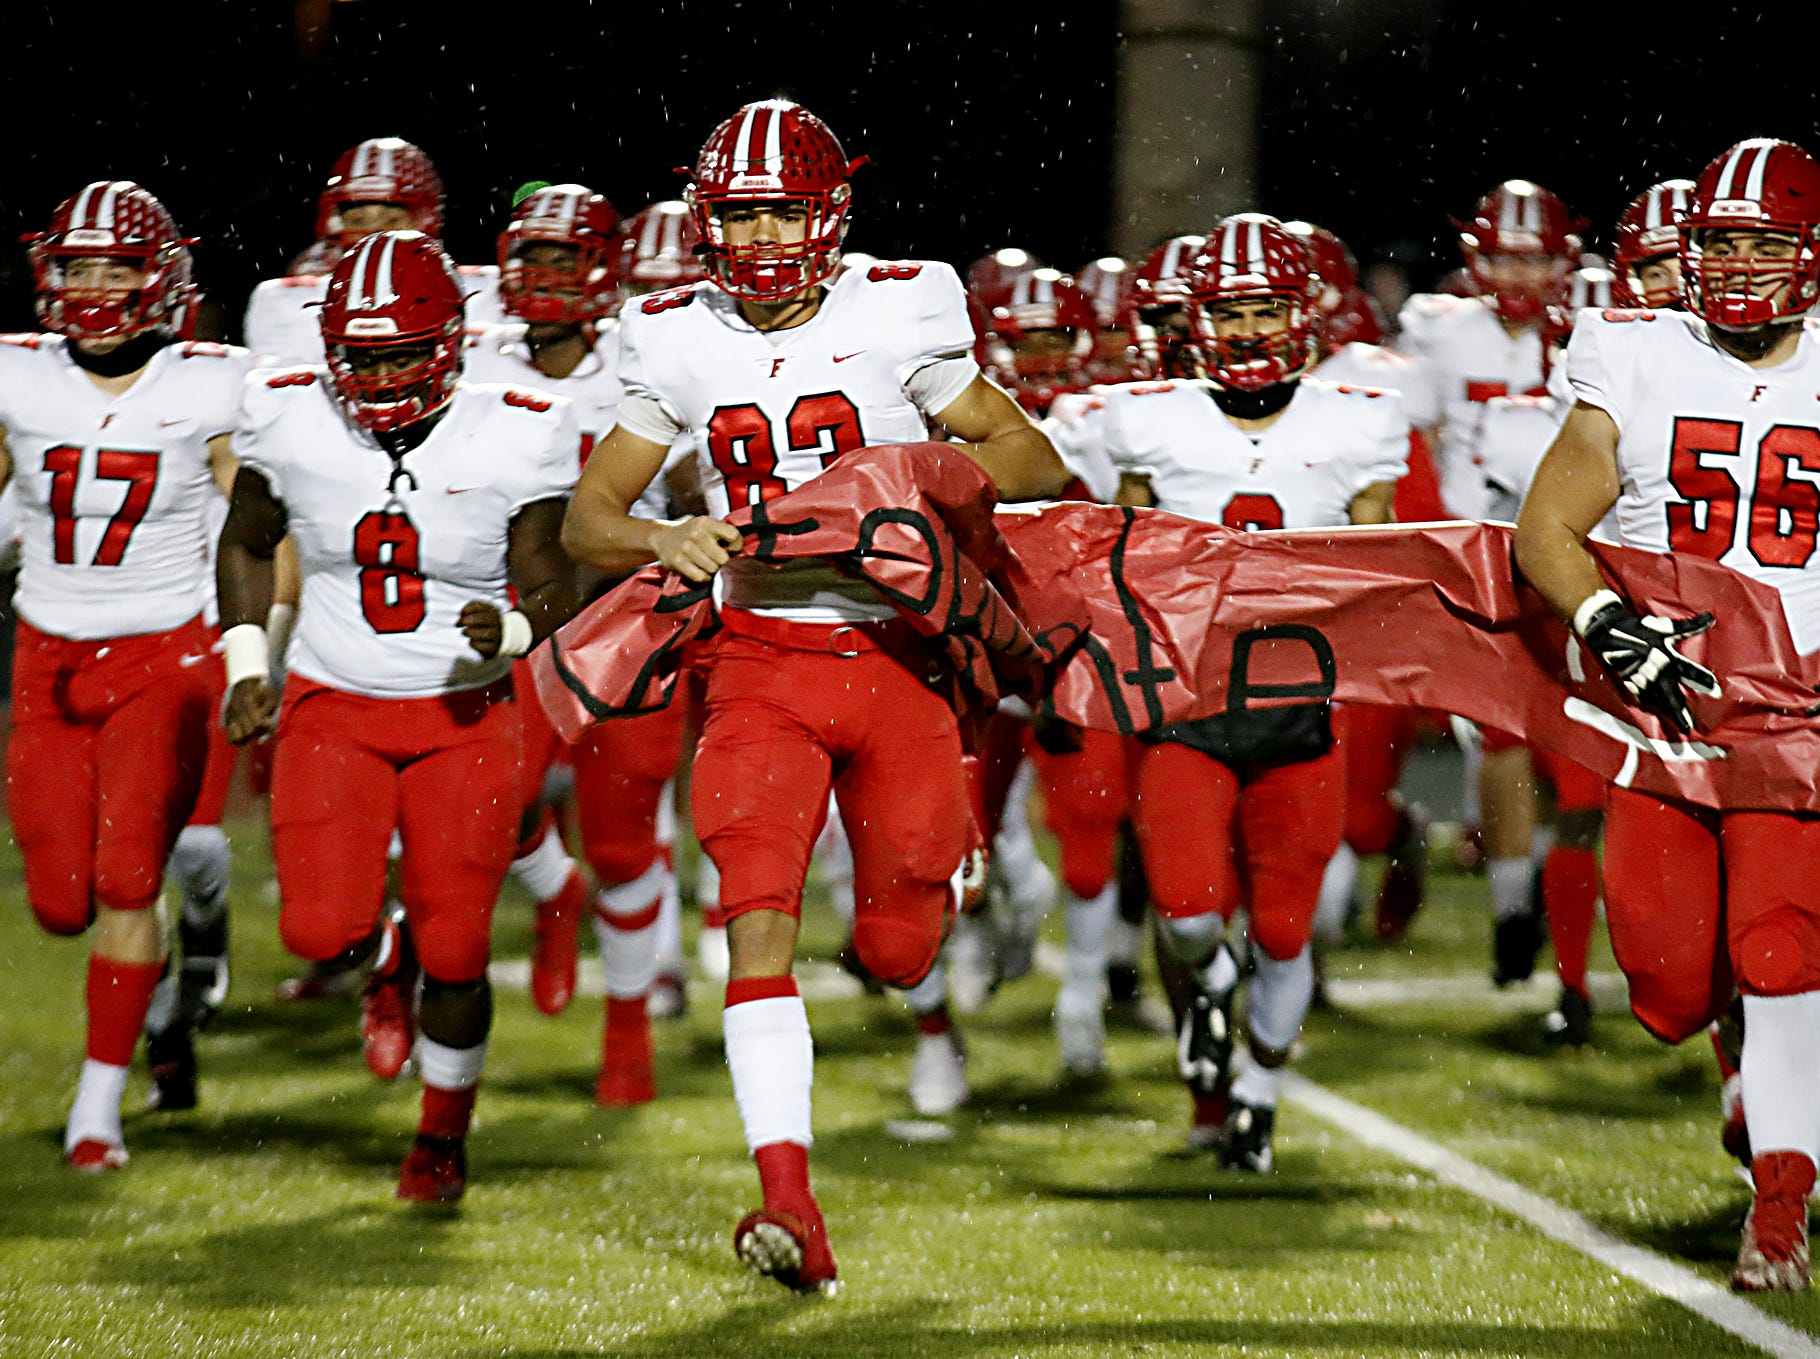 The Fairfield Indians take the field for their Division I playoff game against Milford at Eagle Stadium in Milford Friday, Nov. 2, 2018.